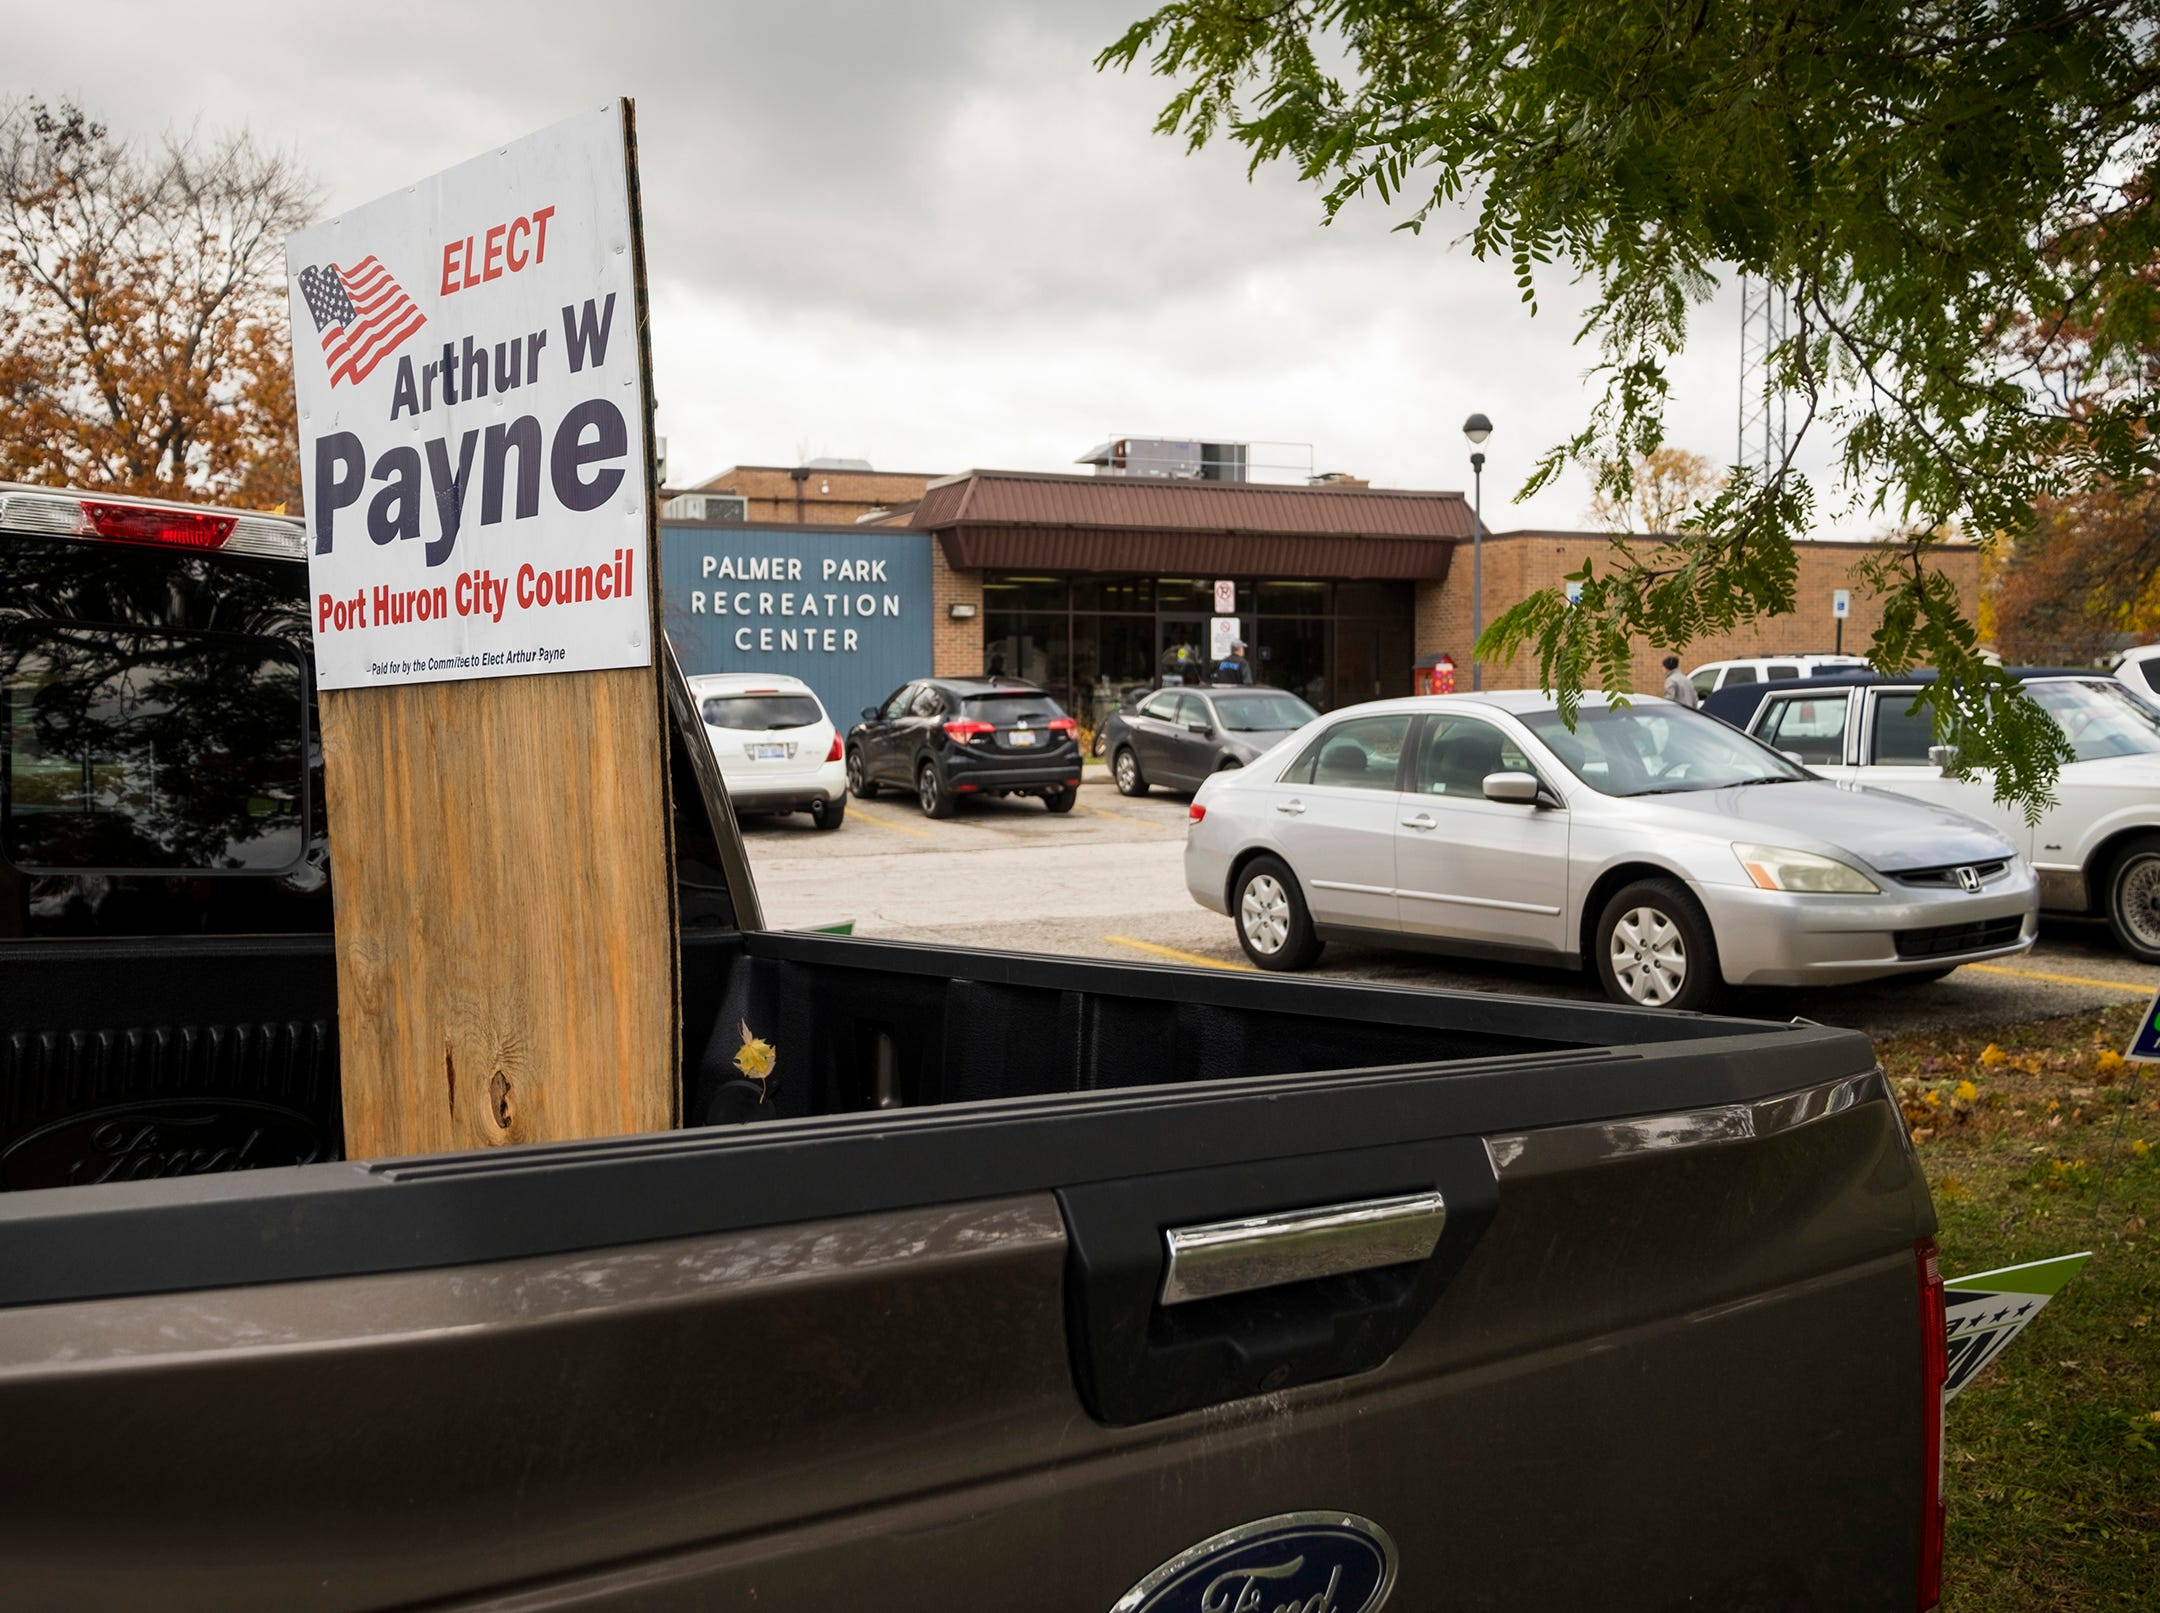 A sign supporting Arthur Payne for Port Huron City Council is mounted on a piece of wood in the bed of a pickup truck parked outside Palmer Park Recreation Center Tuesday, Nov. 6, 2018 during mid-term elections.